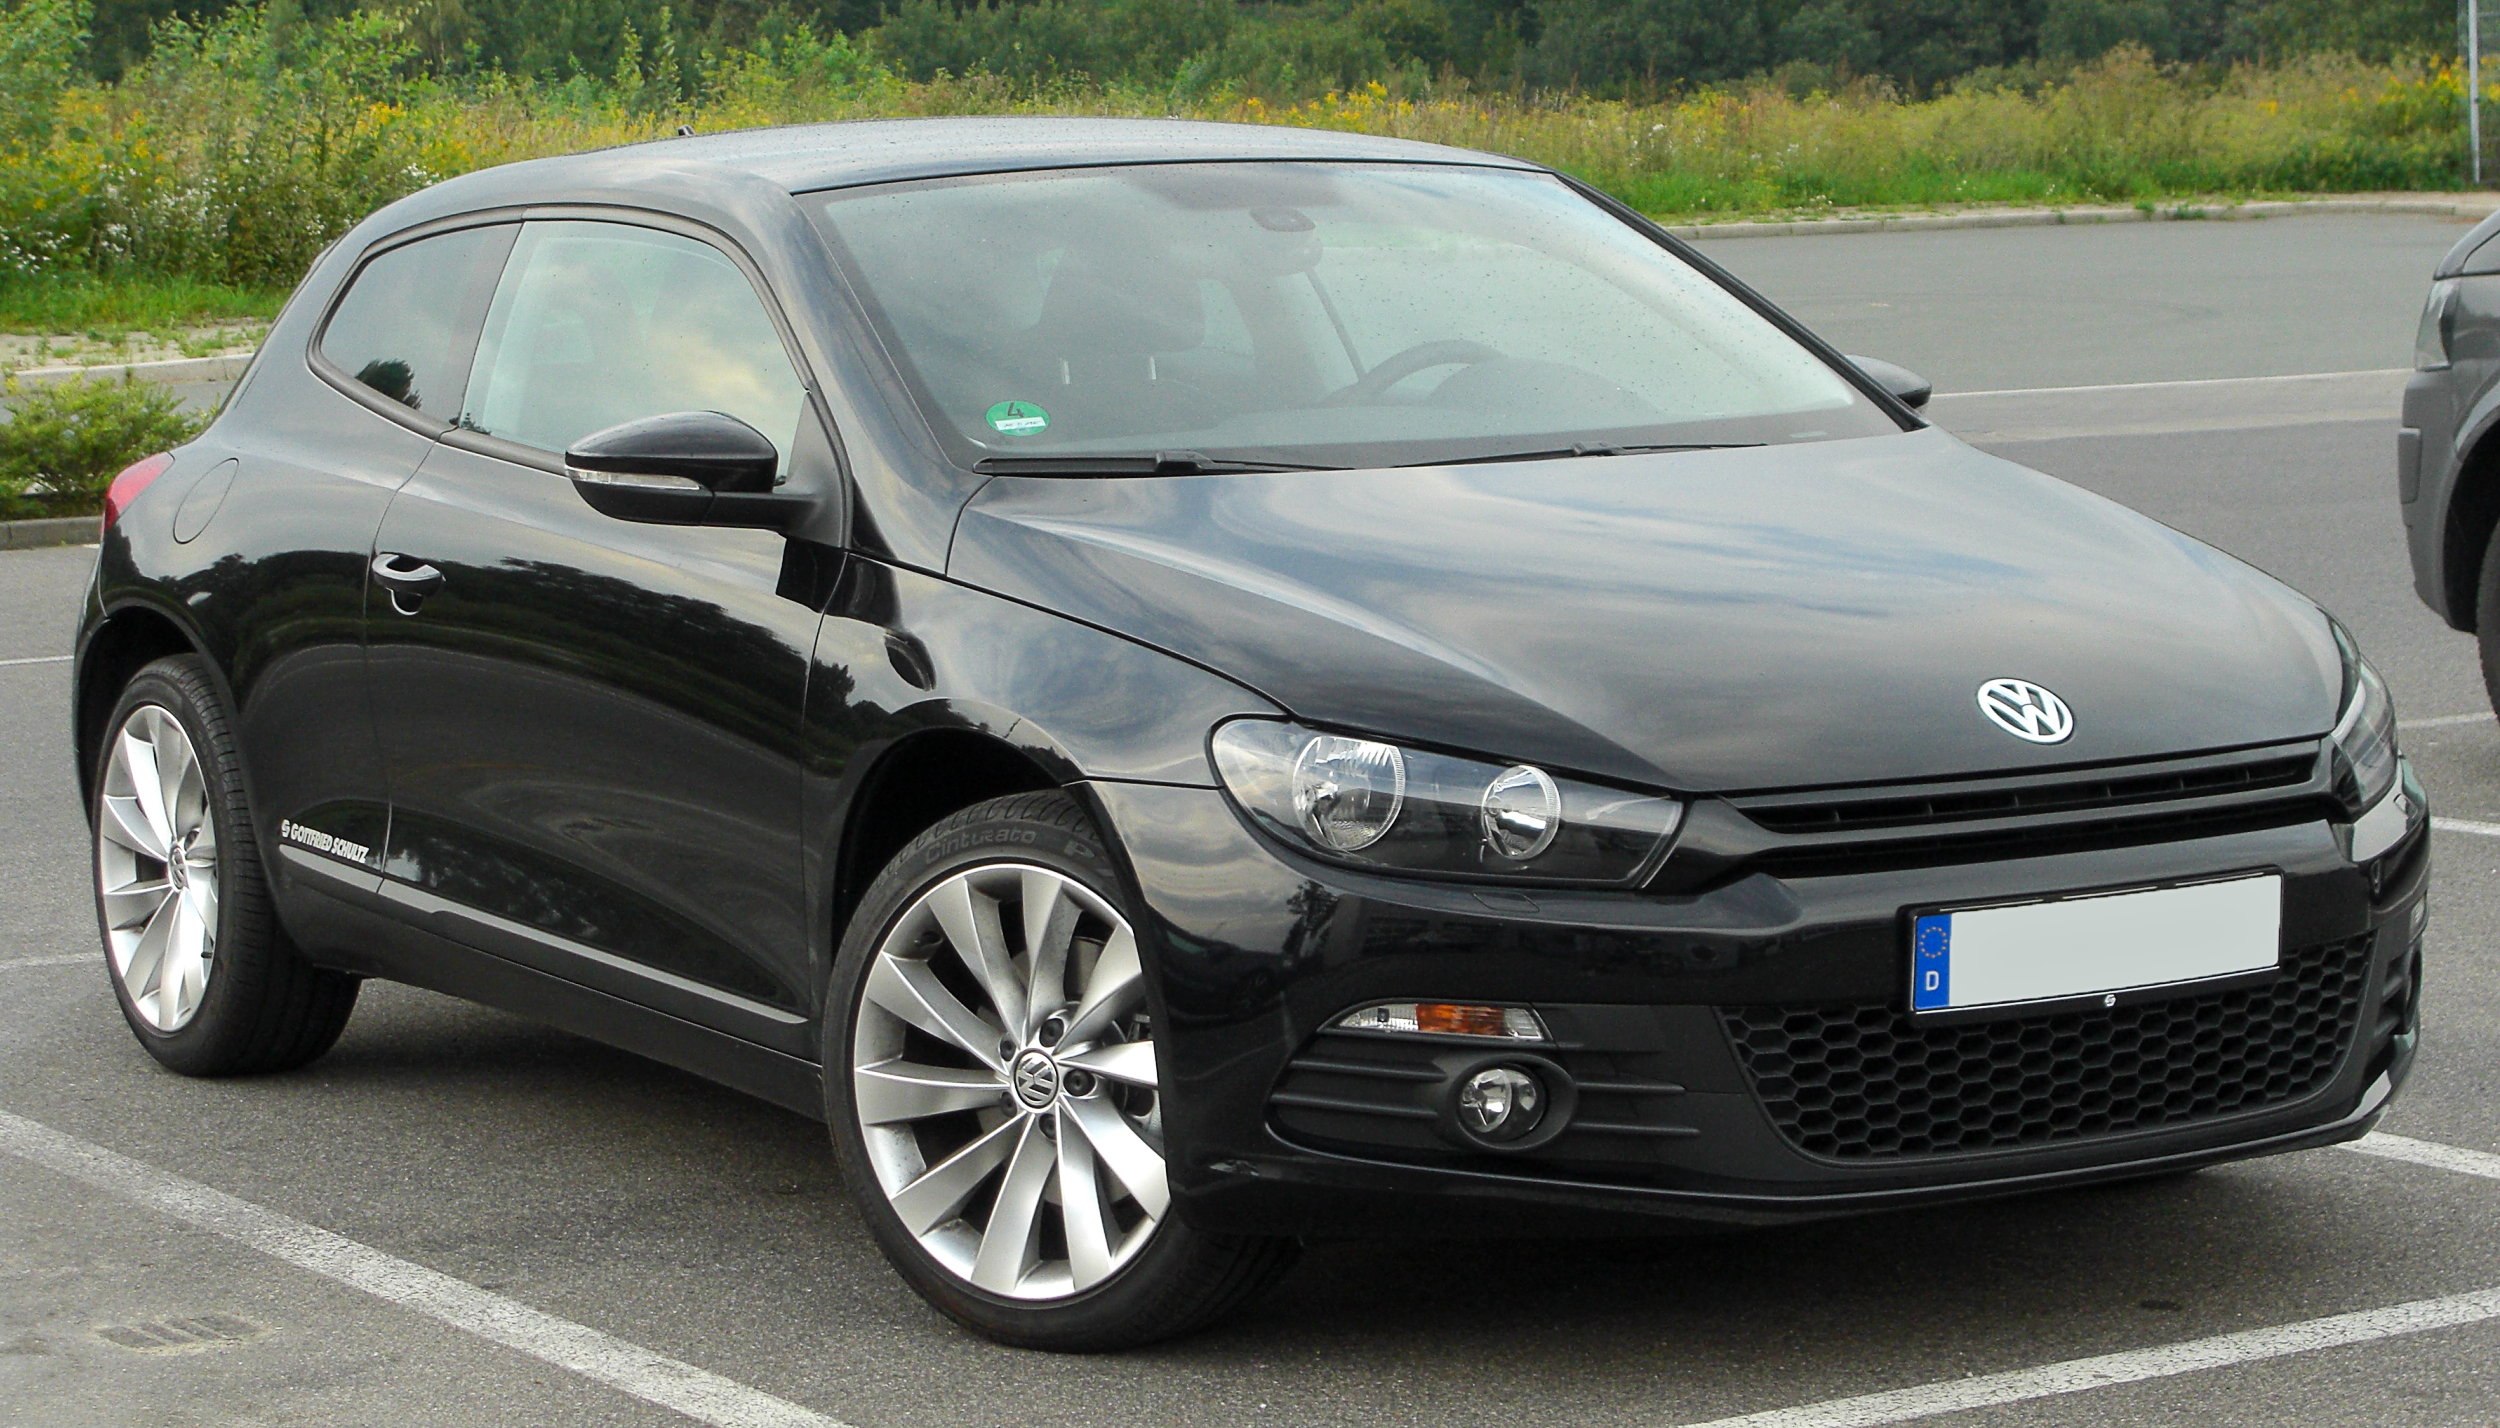 Vw Scirocco Usa >> 2010 Volkswagen Scirocco 3 – pictures, information and specs - Auto-Database.com